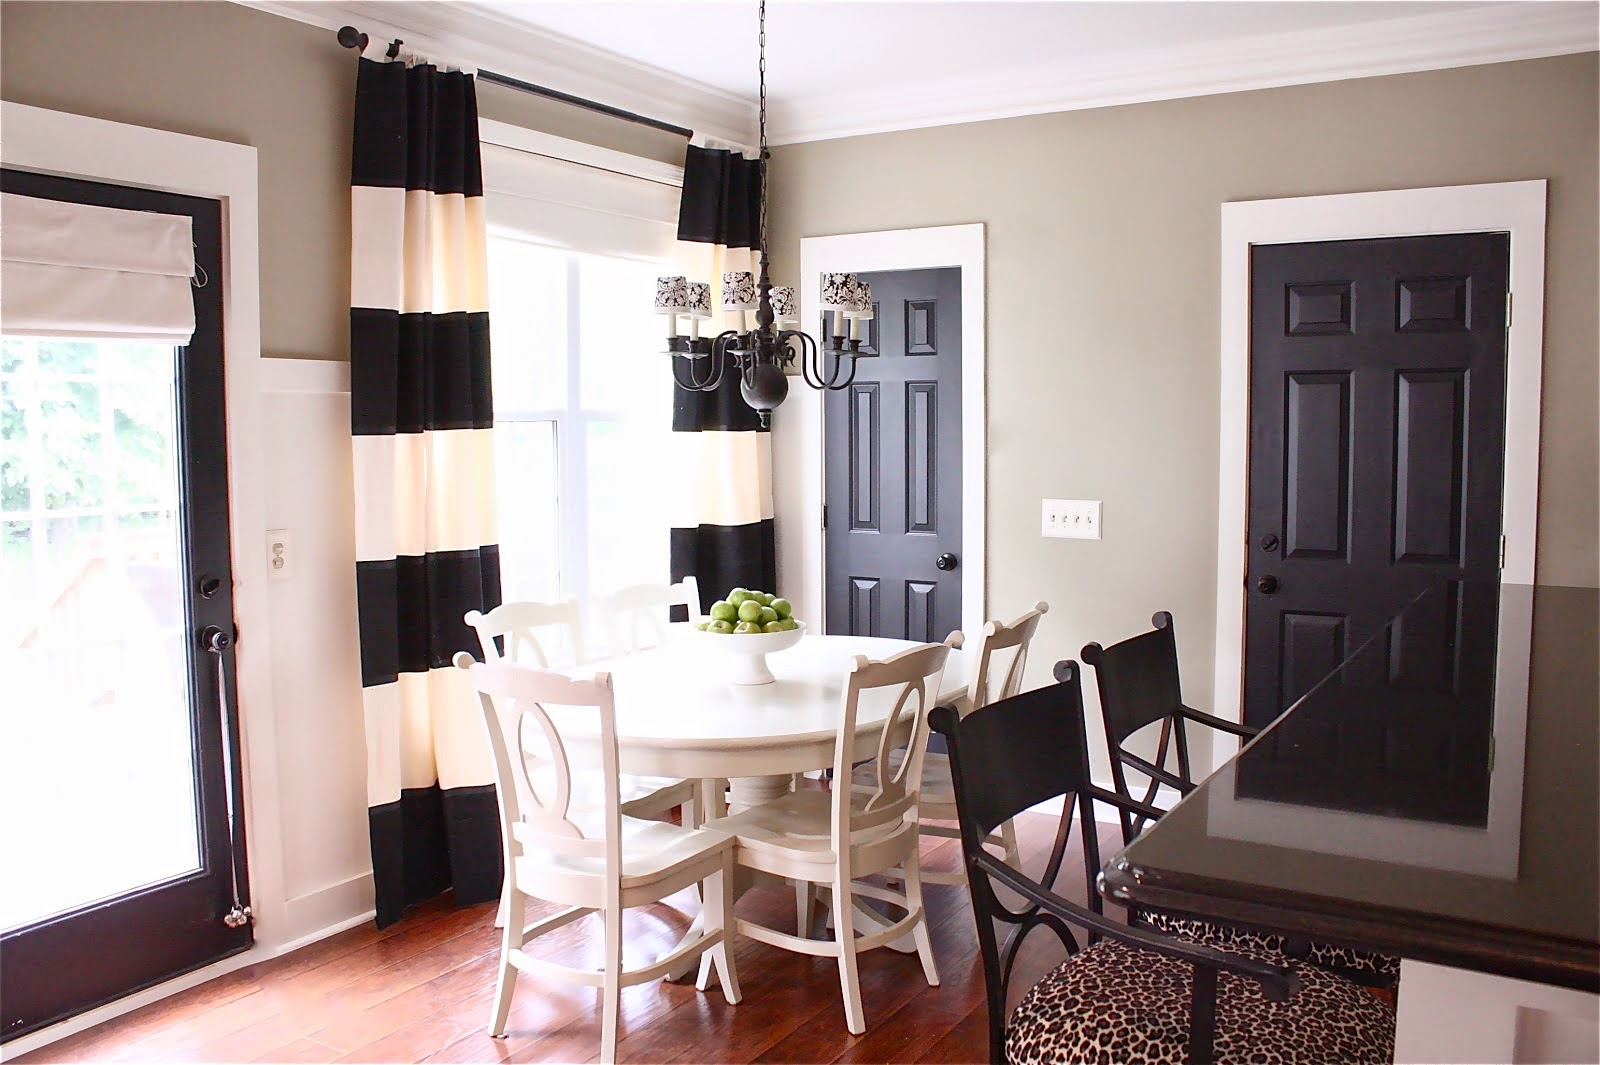 http://thecosmeticallychallengedhome.com/2013/11/01/bring-sexy-black-interior-doors/